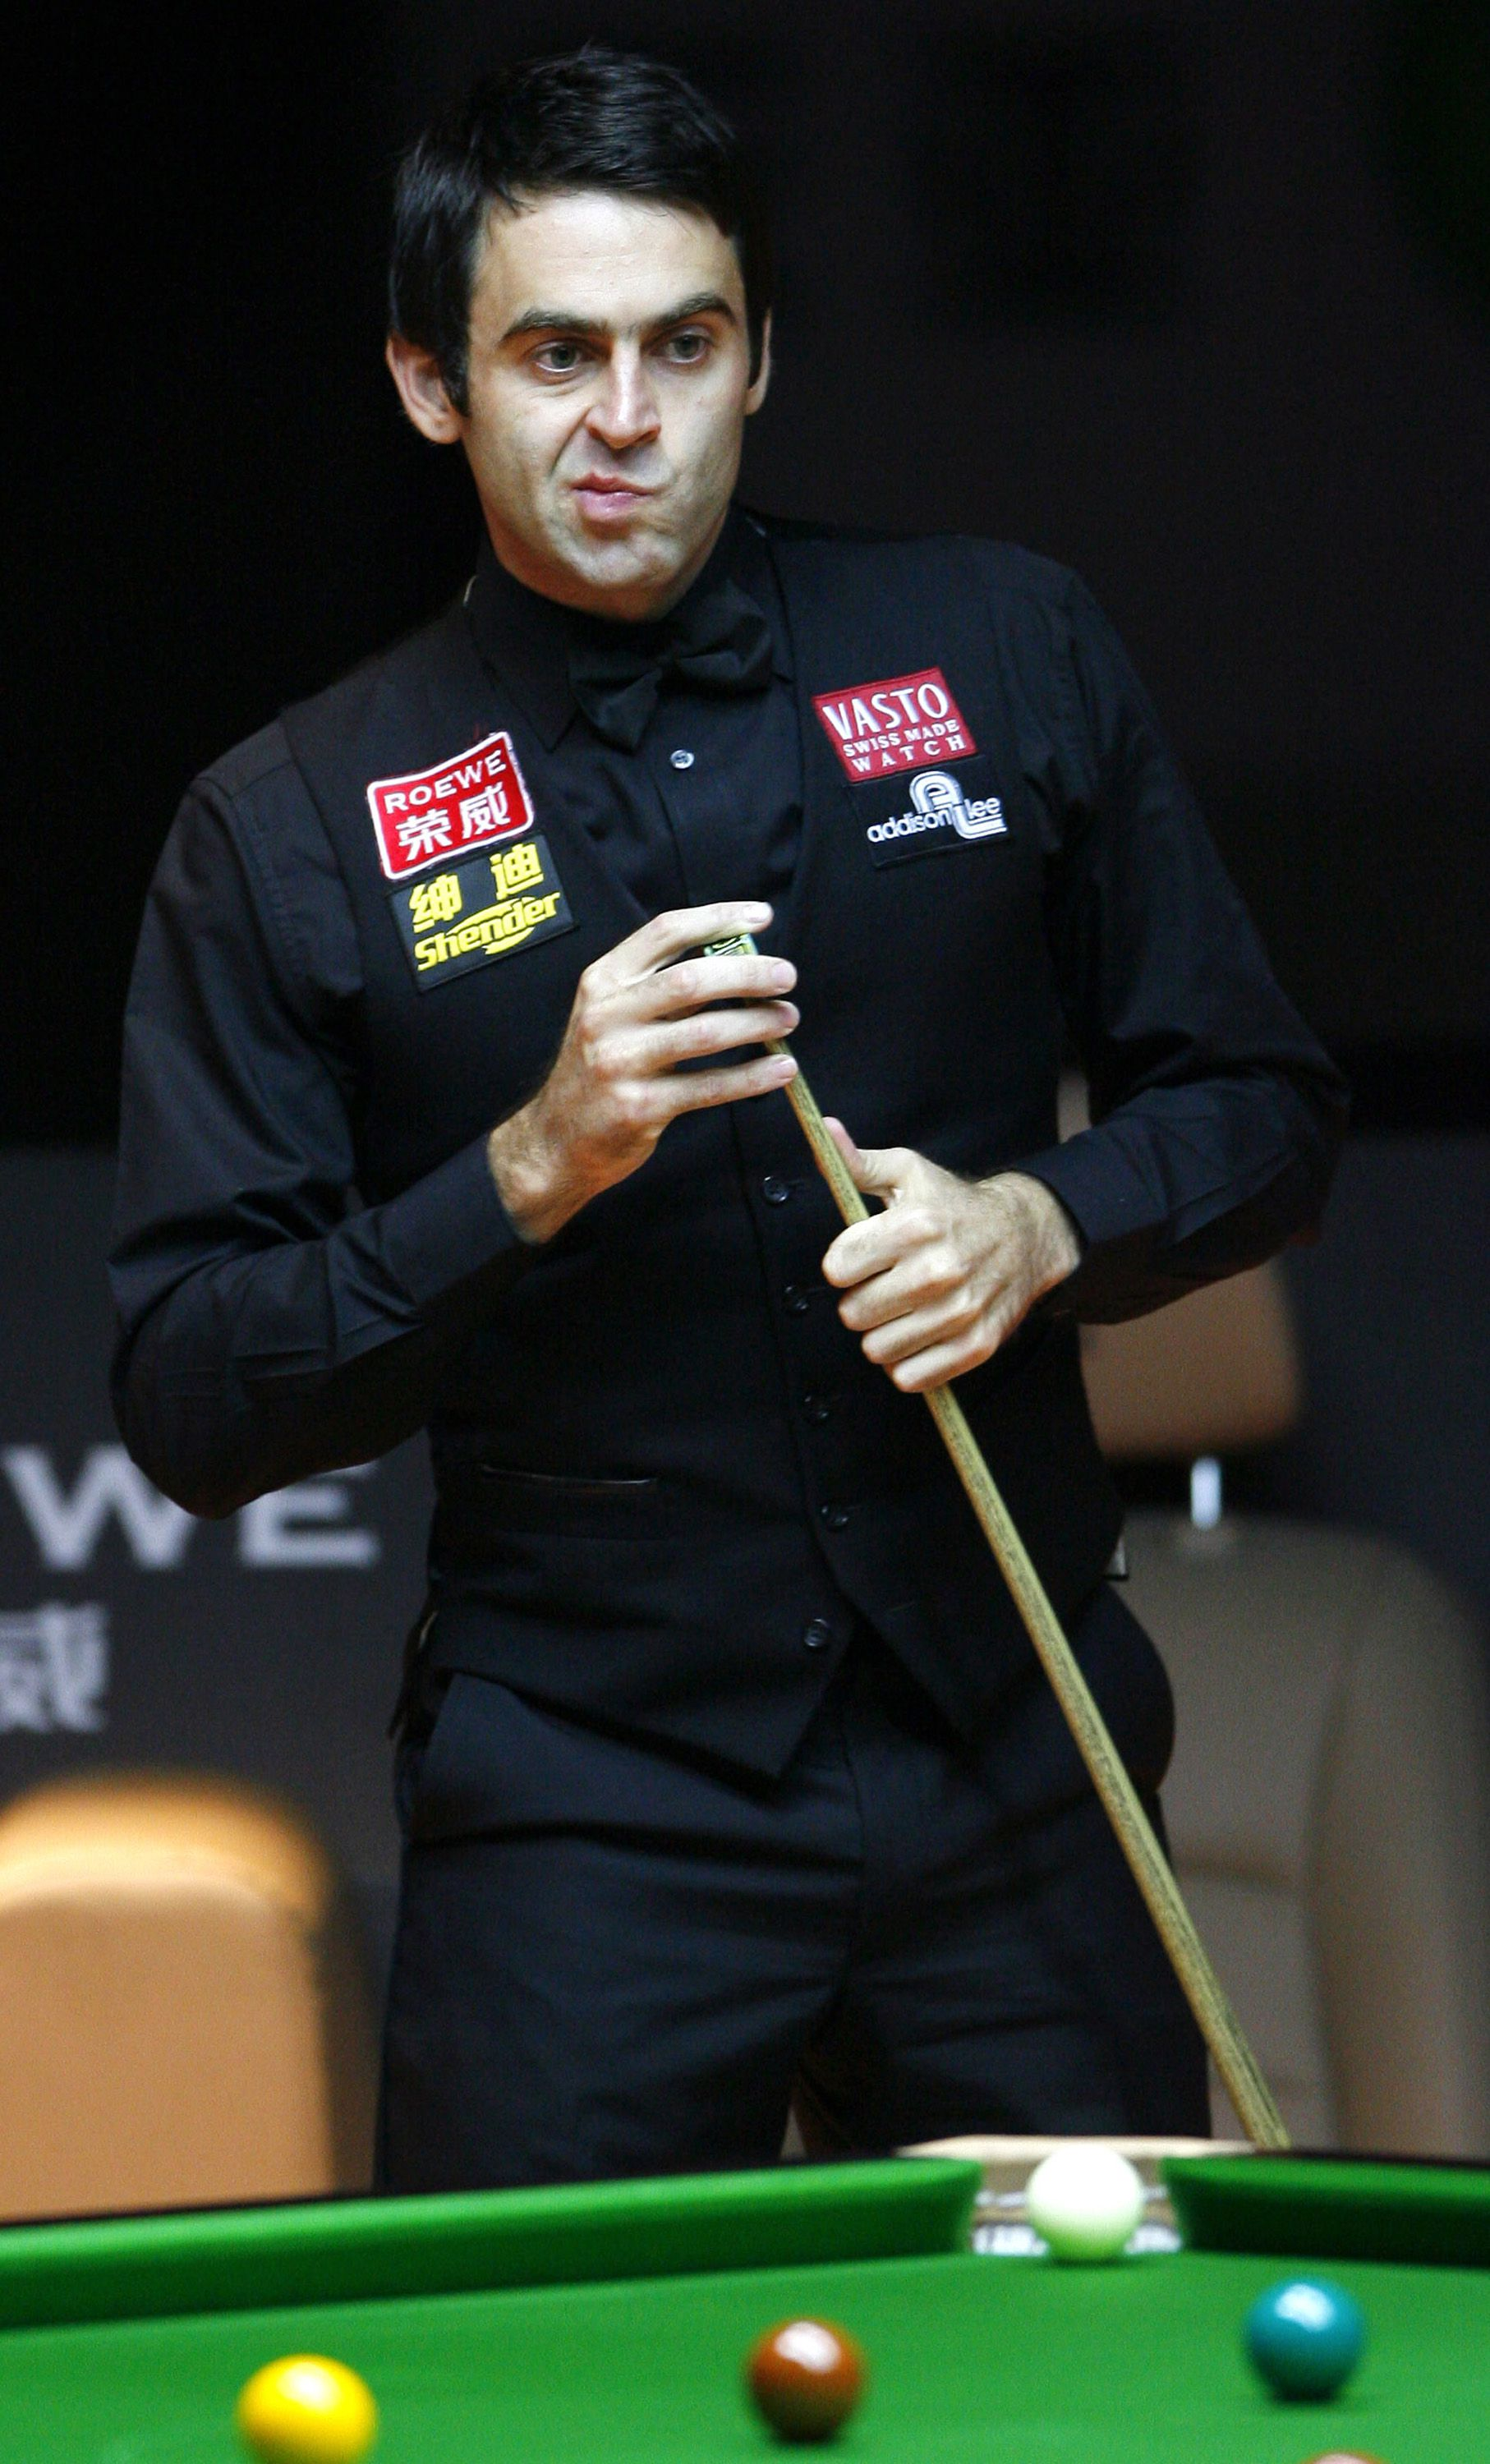 In this photo released by China's Xinhua News Agency, Ronnie O'Sullivan of England reacts during the final against his compatriot Ricky Walden in the 2008 World Snooker Roewe Shanghai Masters in east China's Shanghai, Sunday, Oct. 5, 2008. Qualifier Walden upset world champion O'Sullivan 10-8. (AP Photo/Xinhua, Fan Jun)